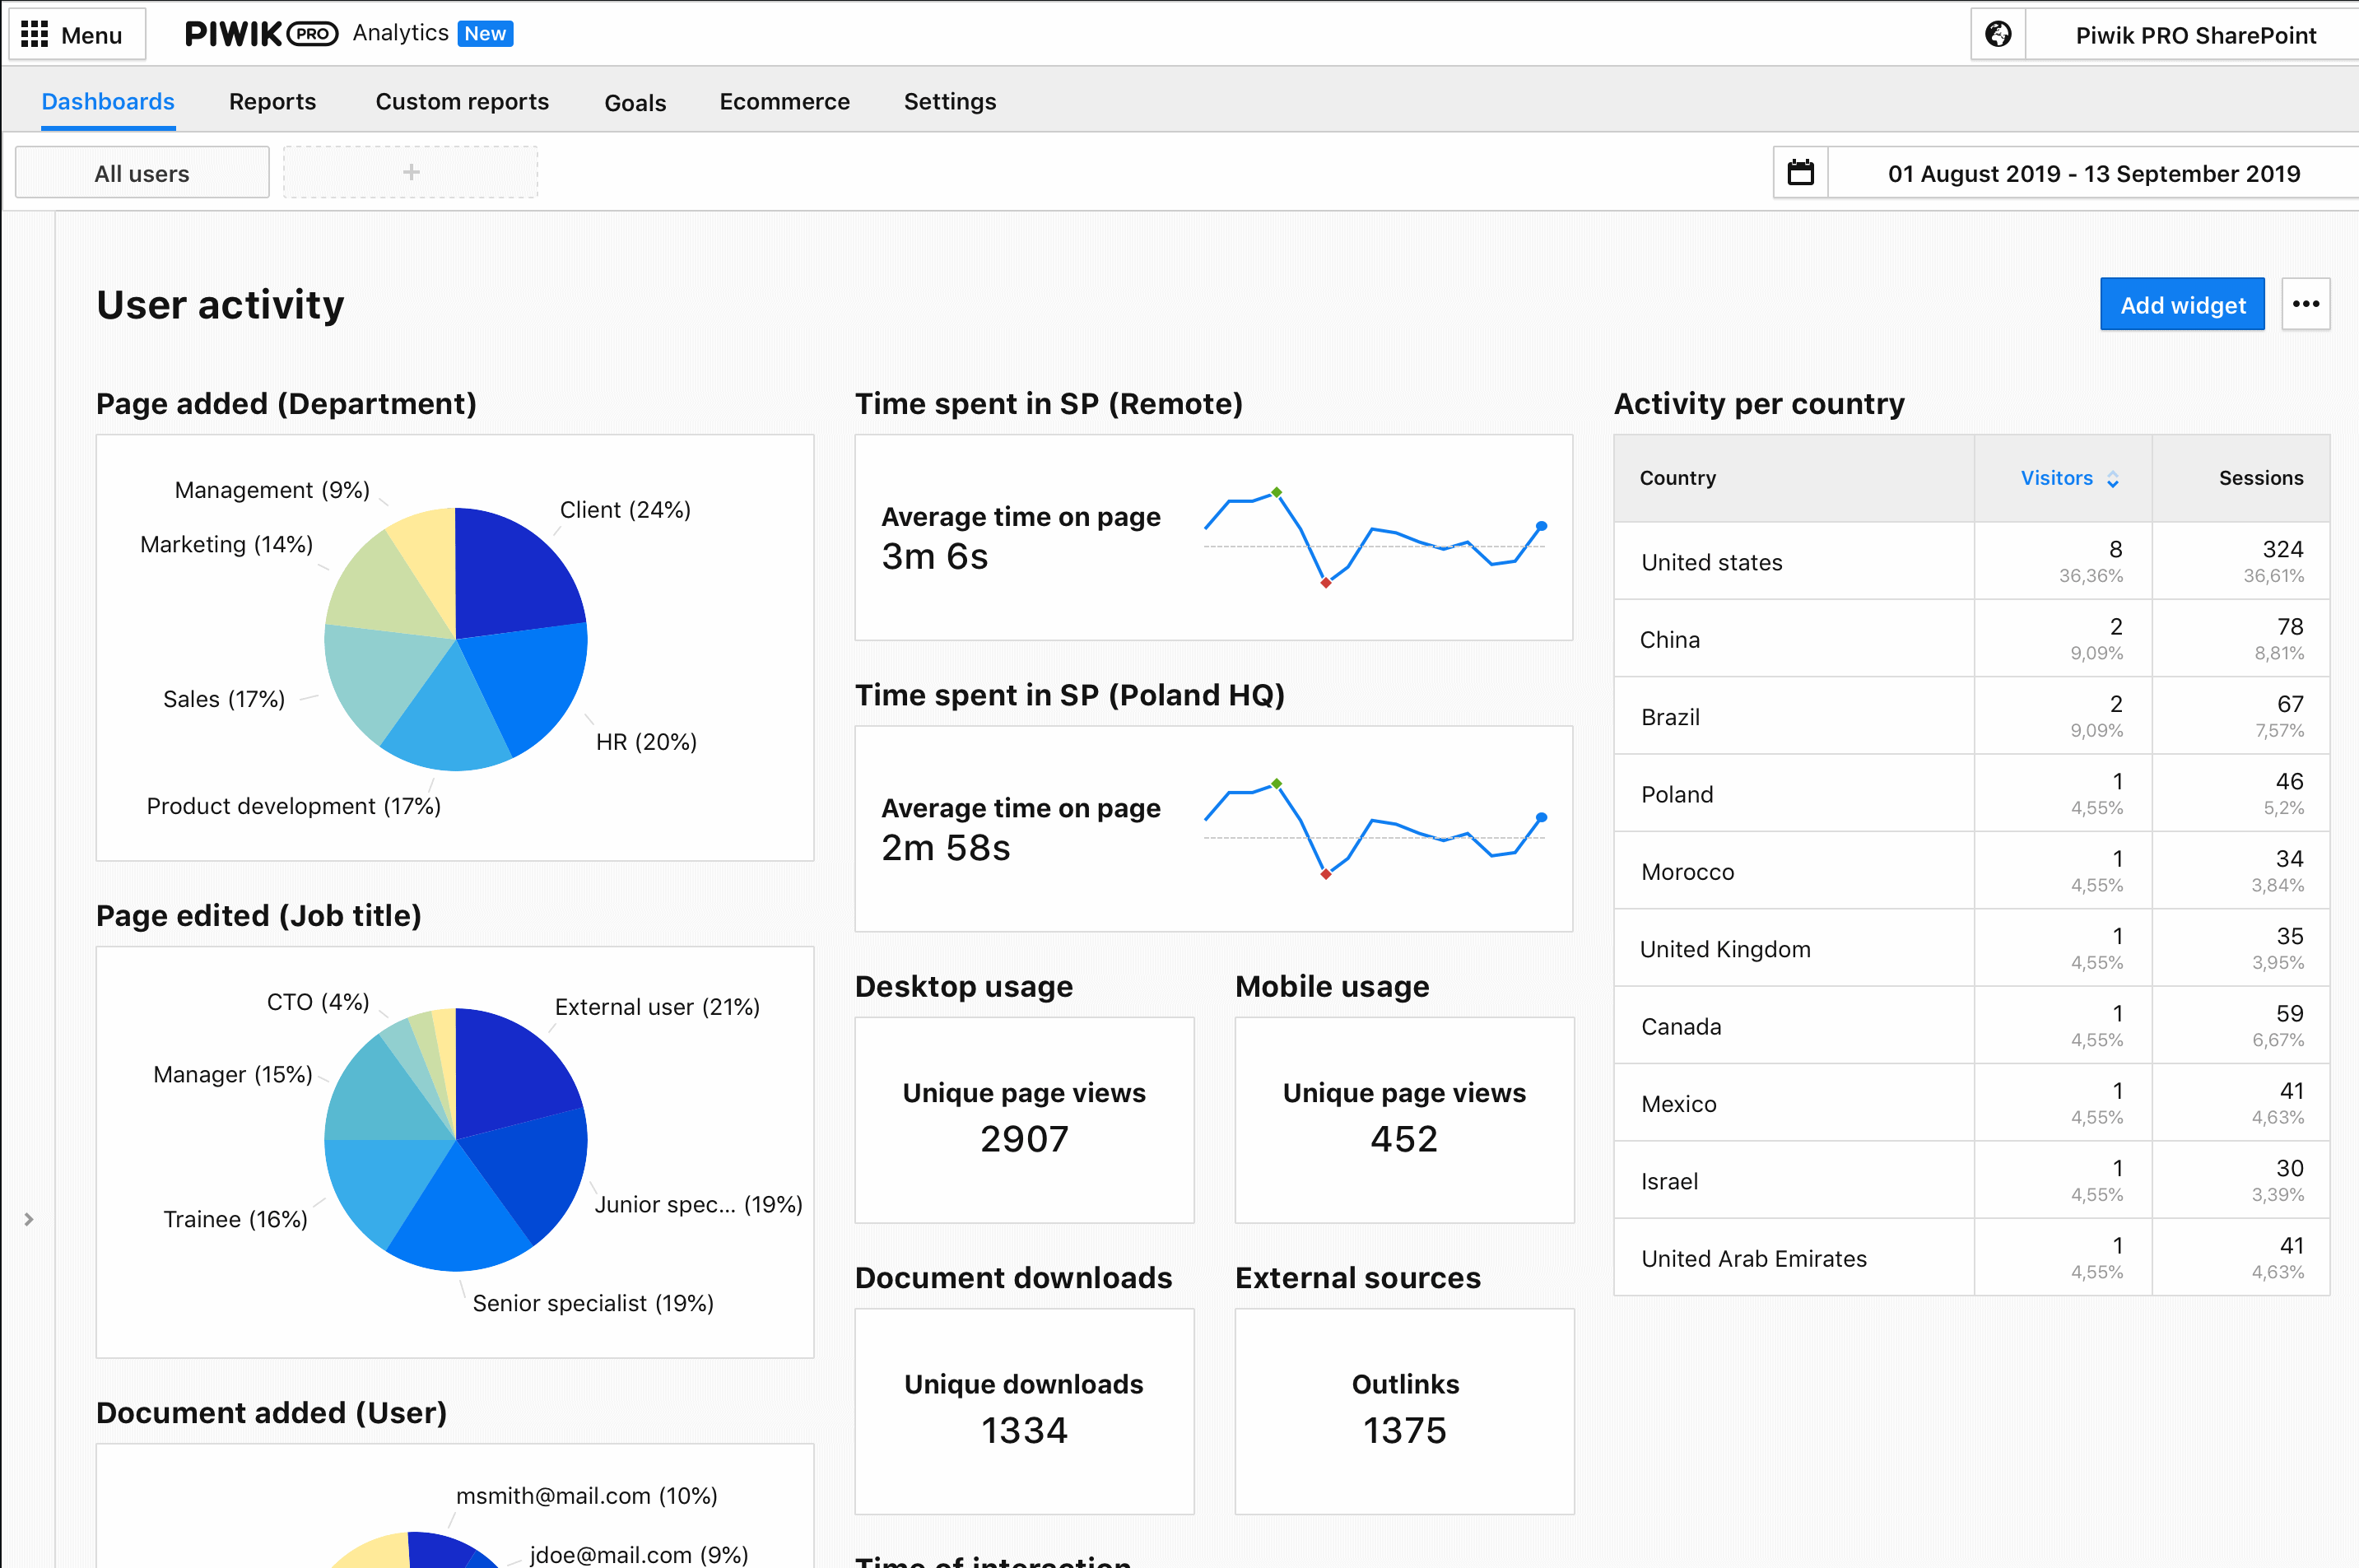 Piwik PRO Analytics Suite interface